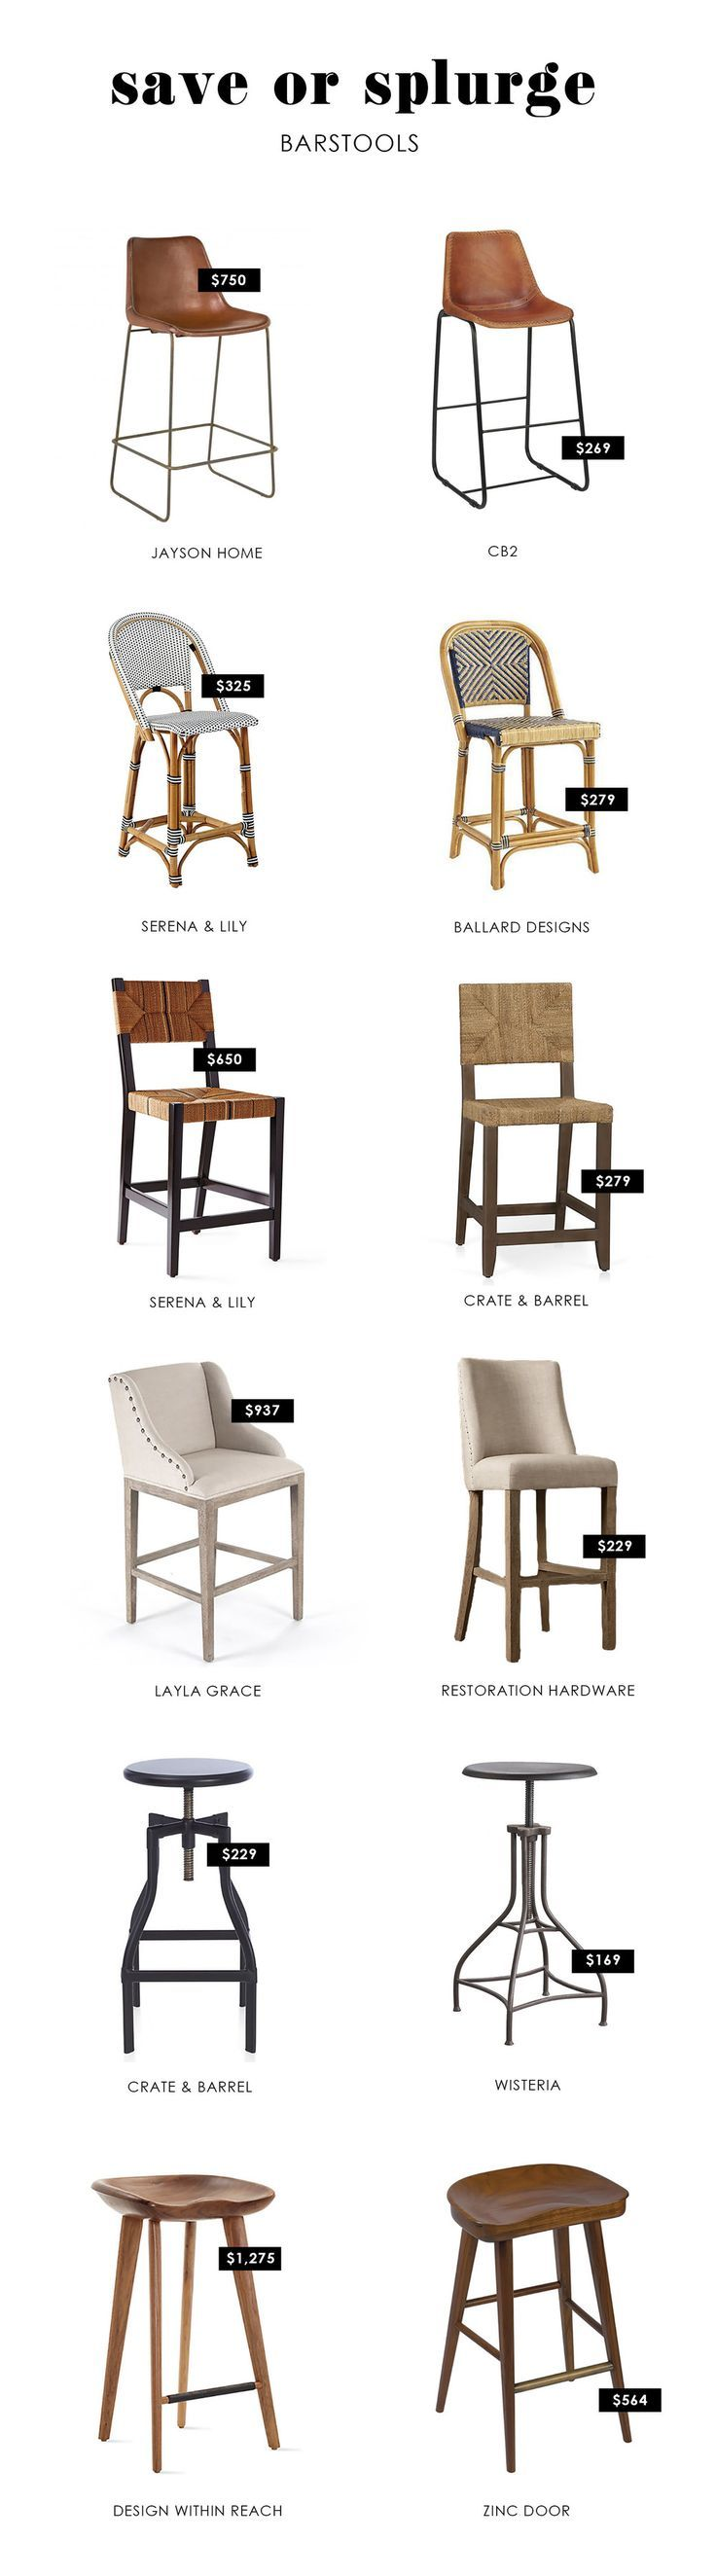 Outstanding Deciding Where To Save Or Splurge Barstool Edition Decor Pabps2019 Chair Design Images Pabps2019Com